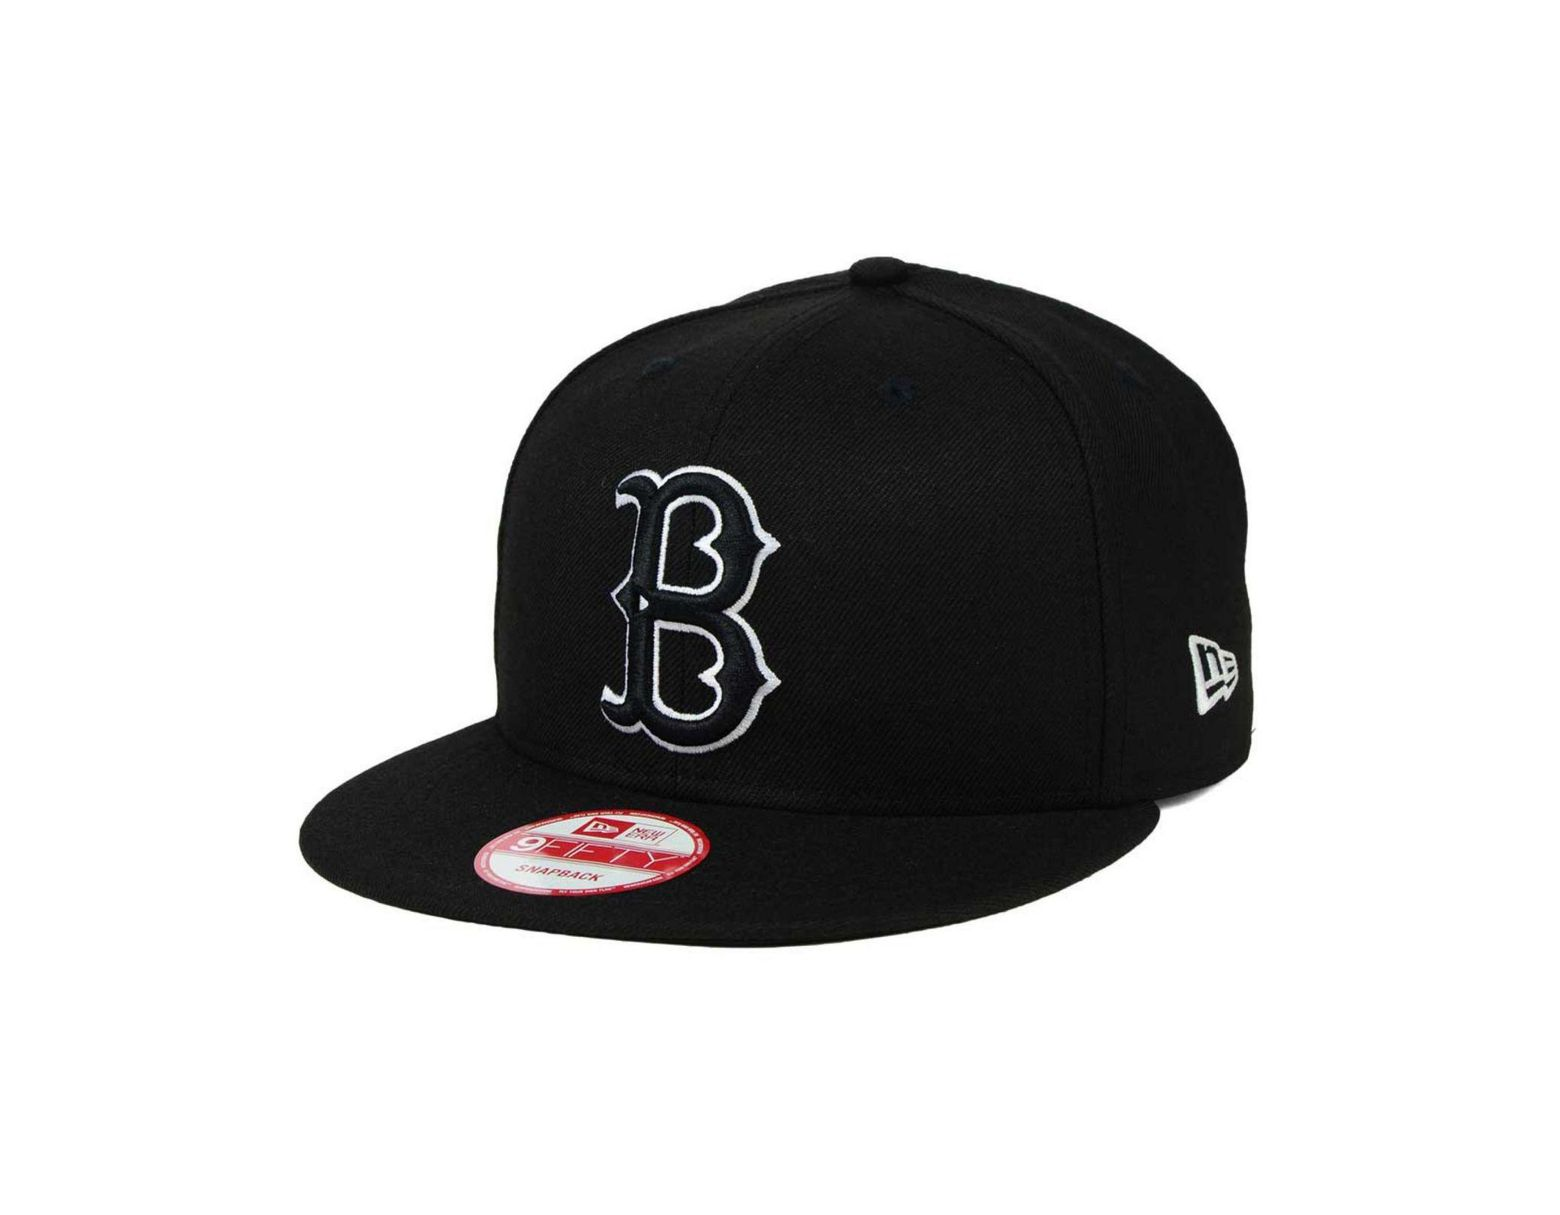 reputable site 3e957 0c0e5 KTZ Brooklyn Dodgers B-dub 9fifty Snapback Cap in Black for Men - Lyst